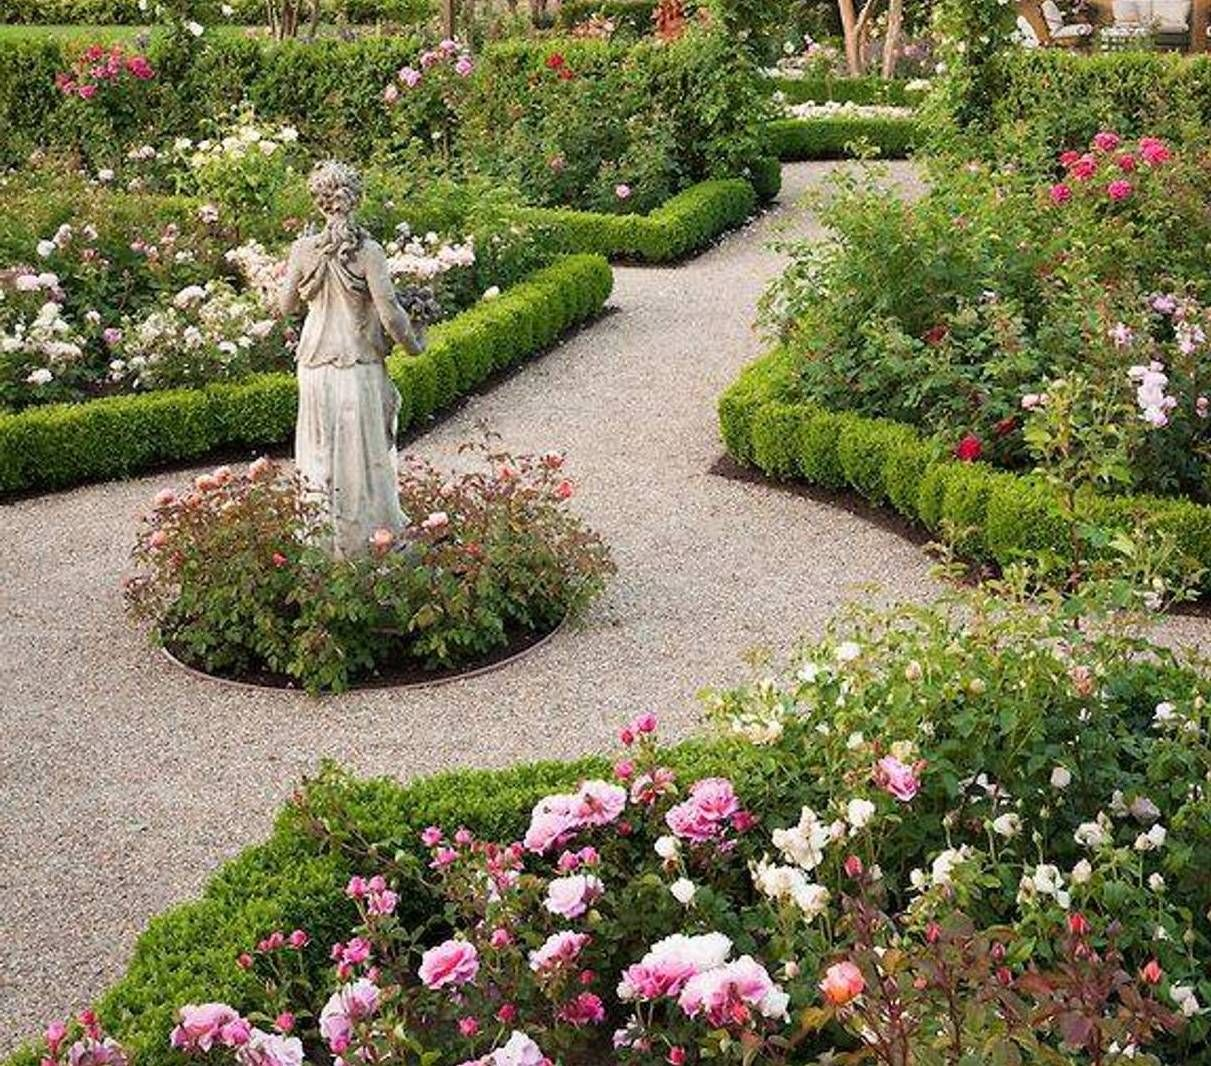 Charming Garden And Lawn , Adorable Rose Garden Design : Rose Garden Design With  Statue